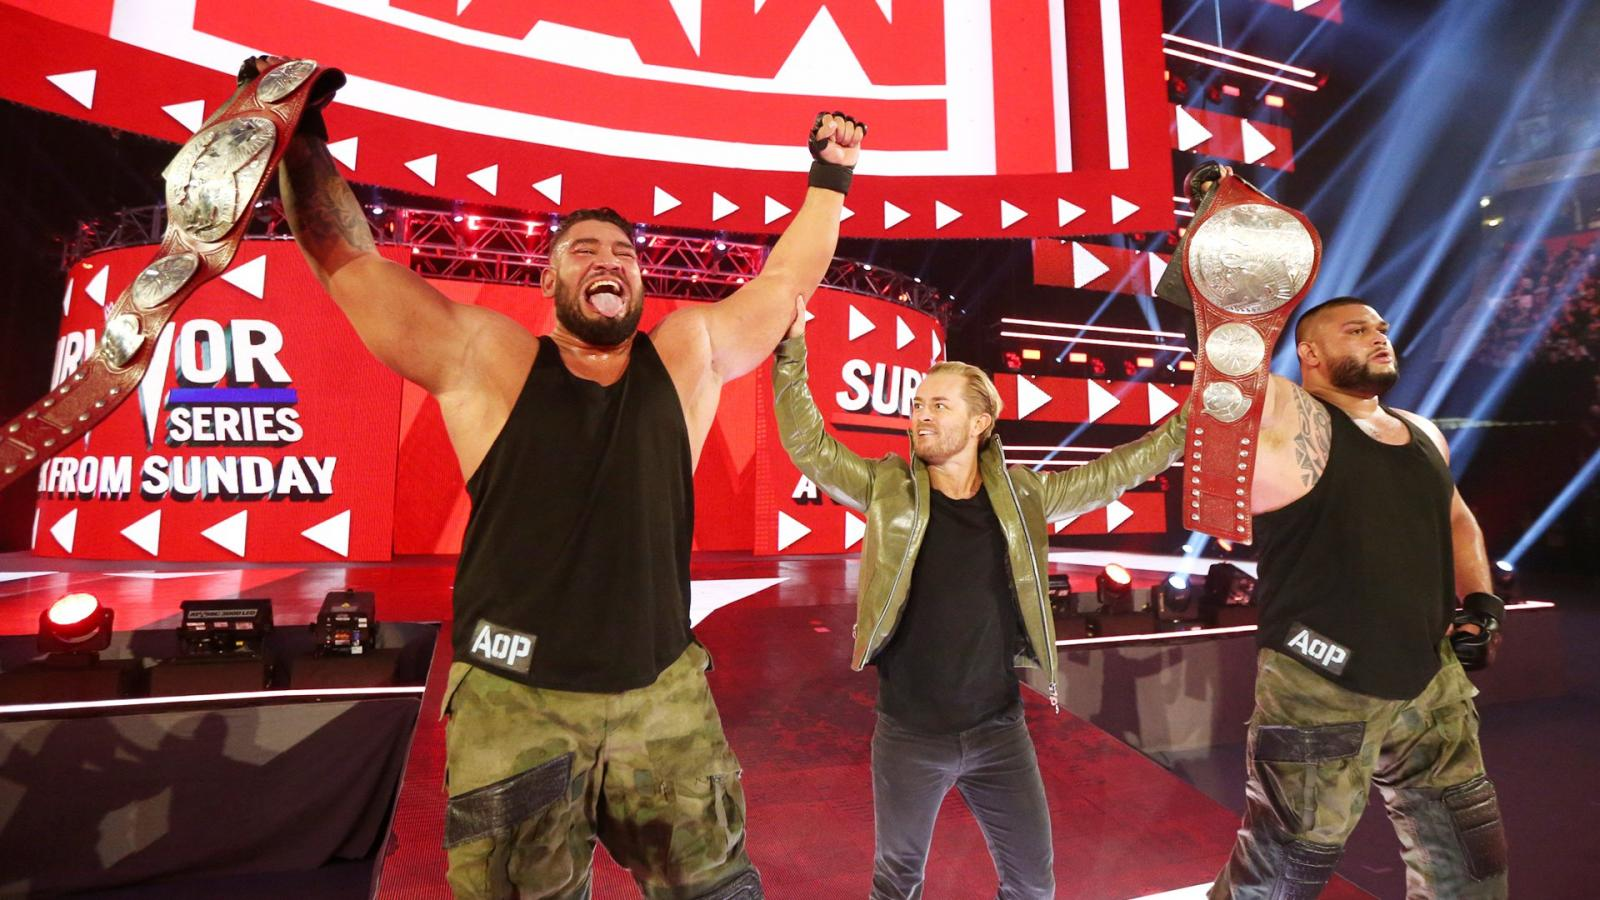 WWE Monday Night Raw 11 05 18 Spoilers: New Raw Tag Team